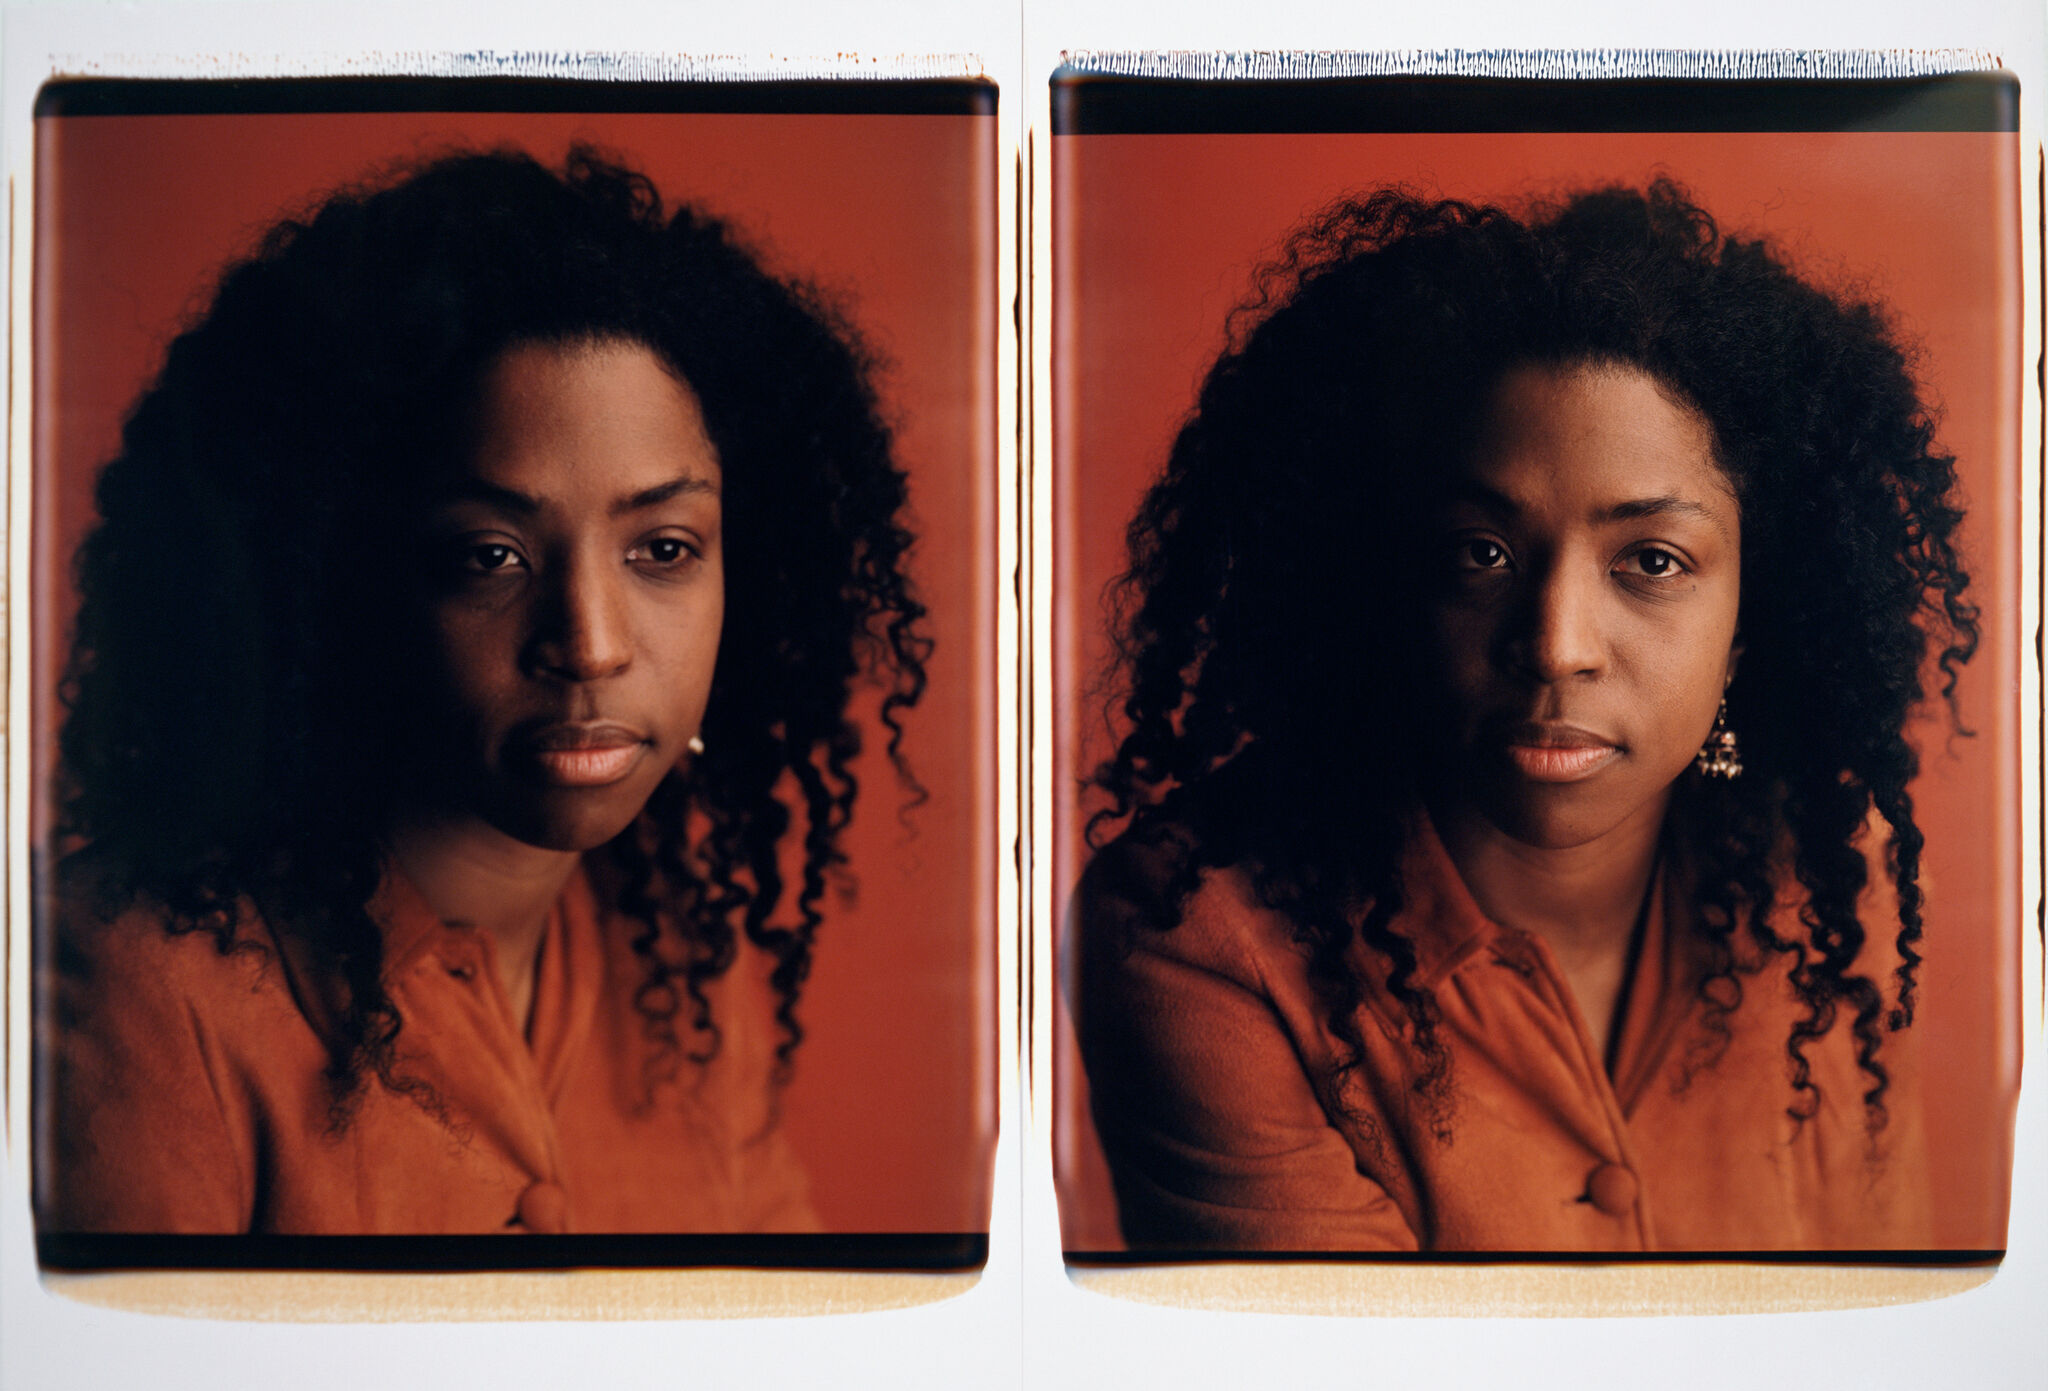 A diptych of photos, each a different portrait of the same woman.